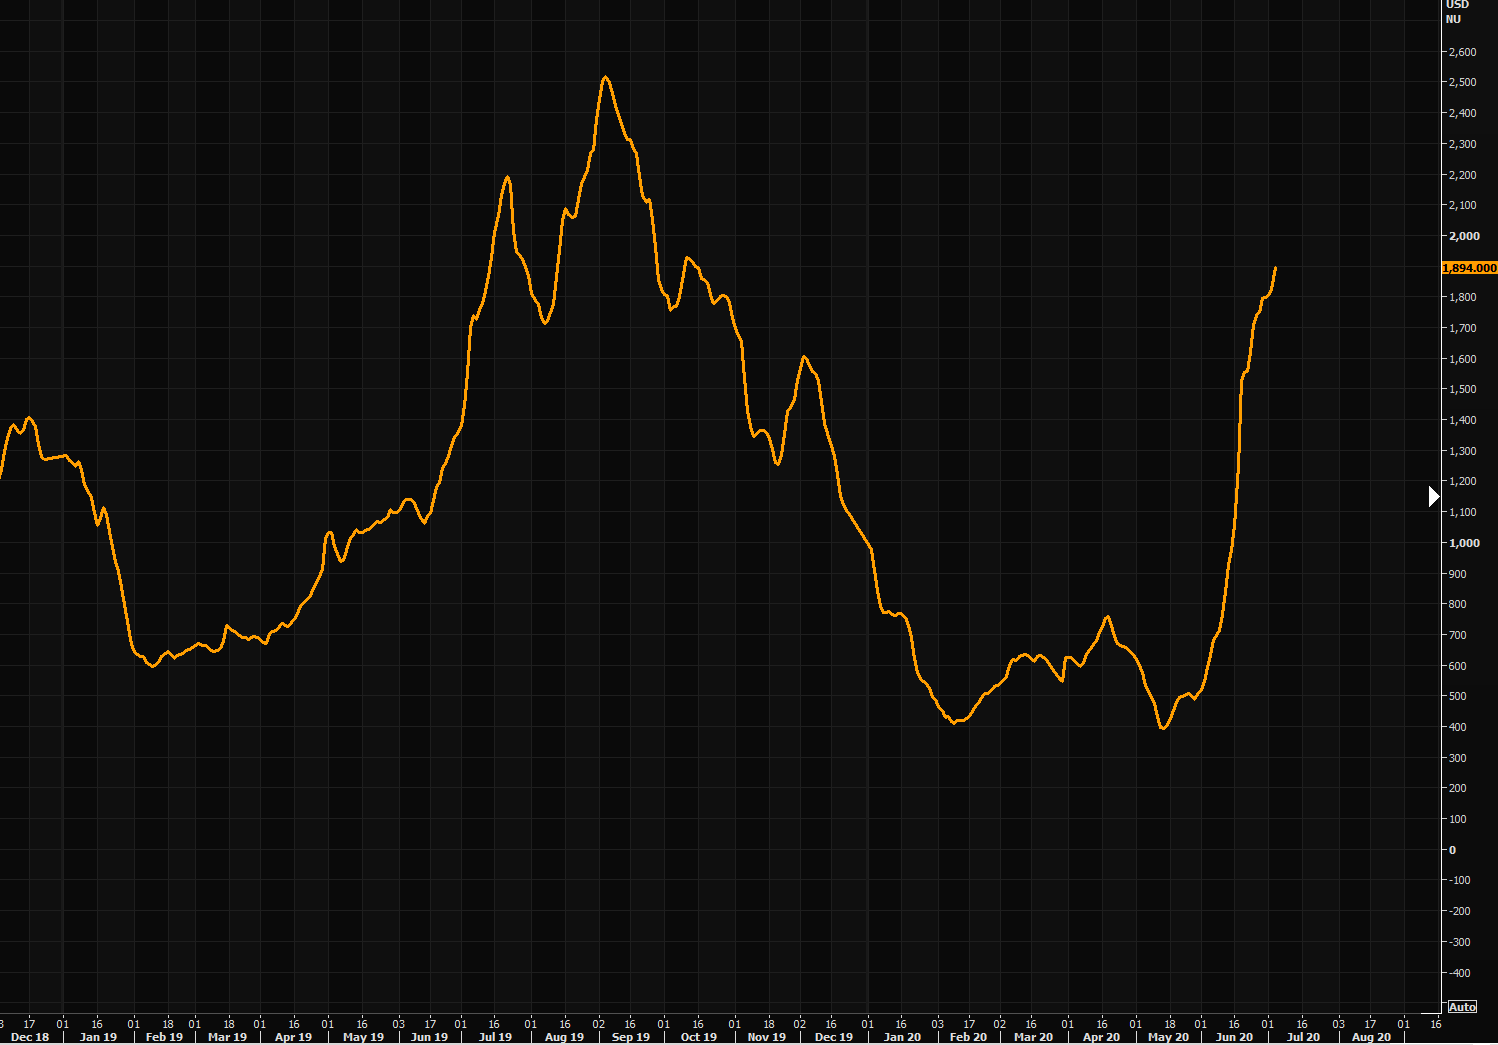 Baltic dry - can't get enough